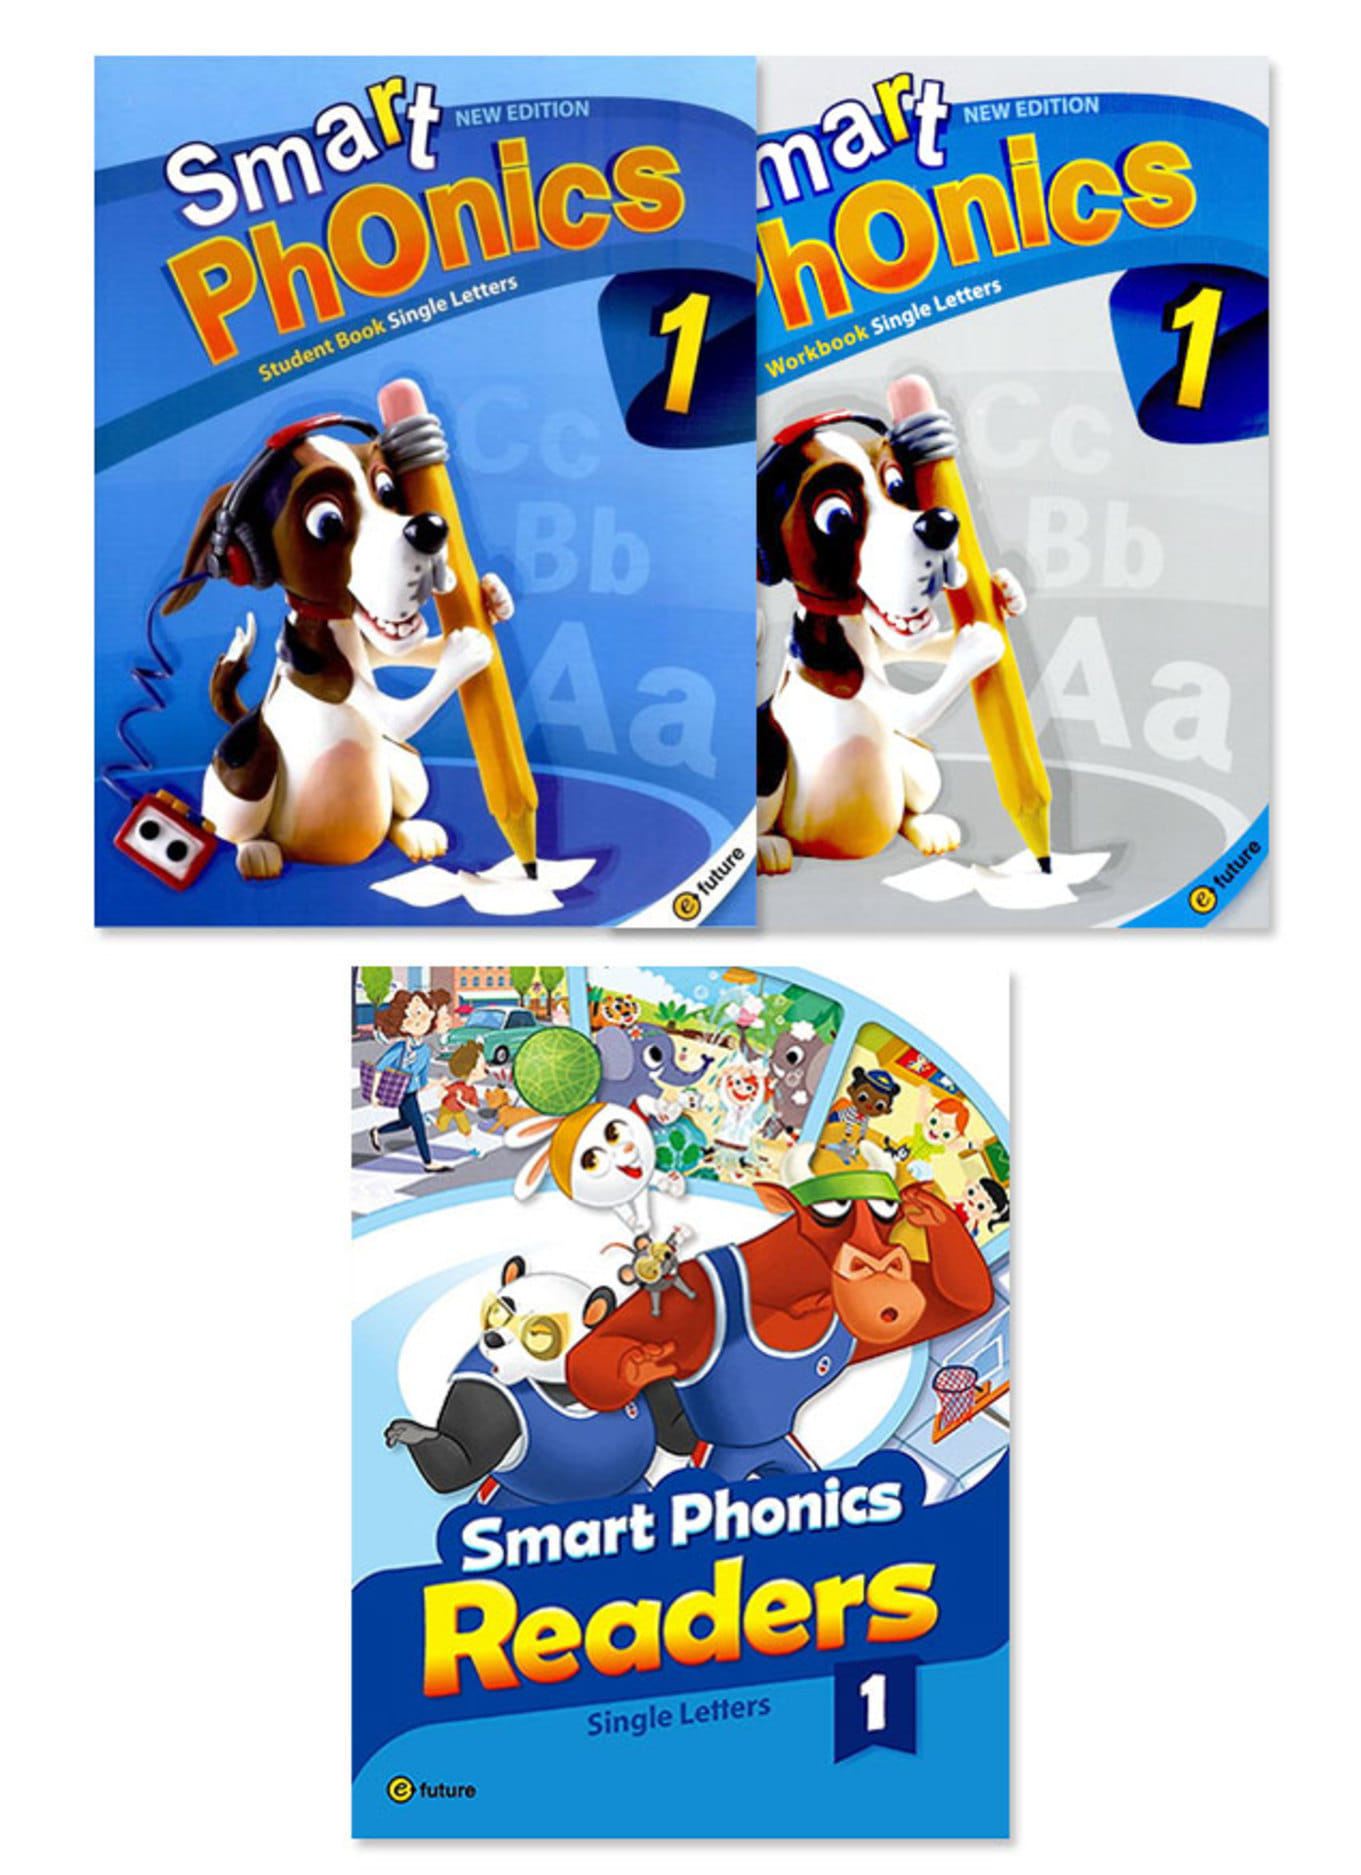 Smart Phonics SB+WB+Readers Combined Version Set (각 레벨 3종)